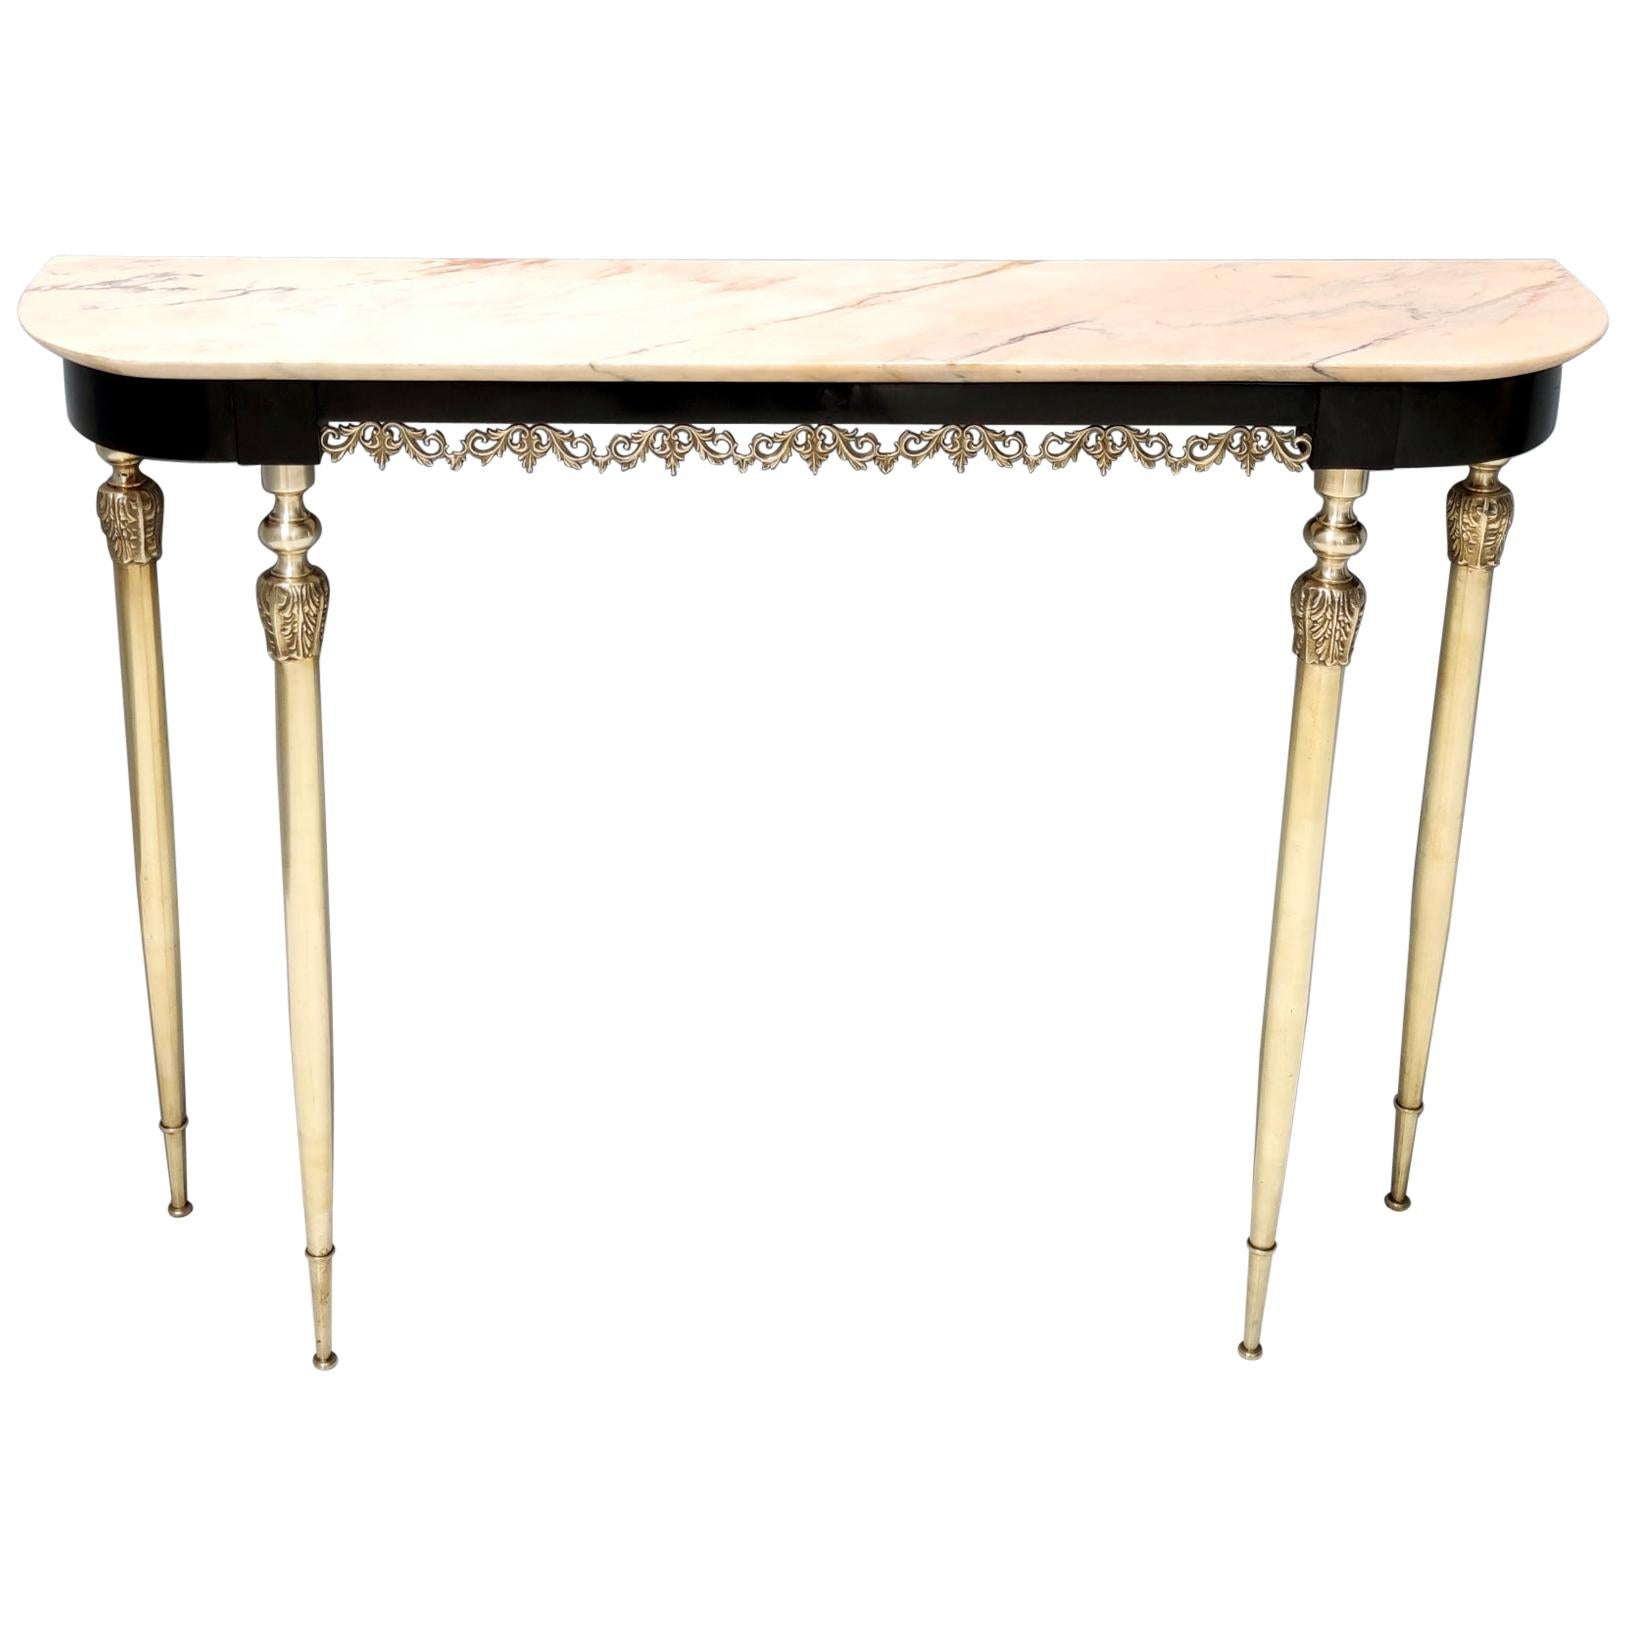 Midcentury Ebonized Beech Console Table with a Portuguese Pink Marble Top, Italy